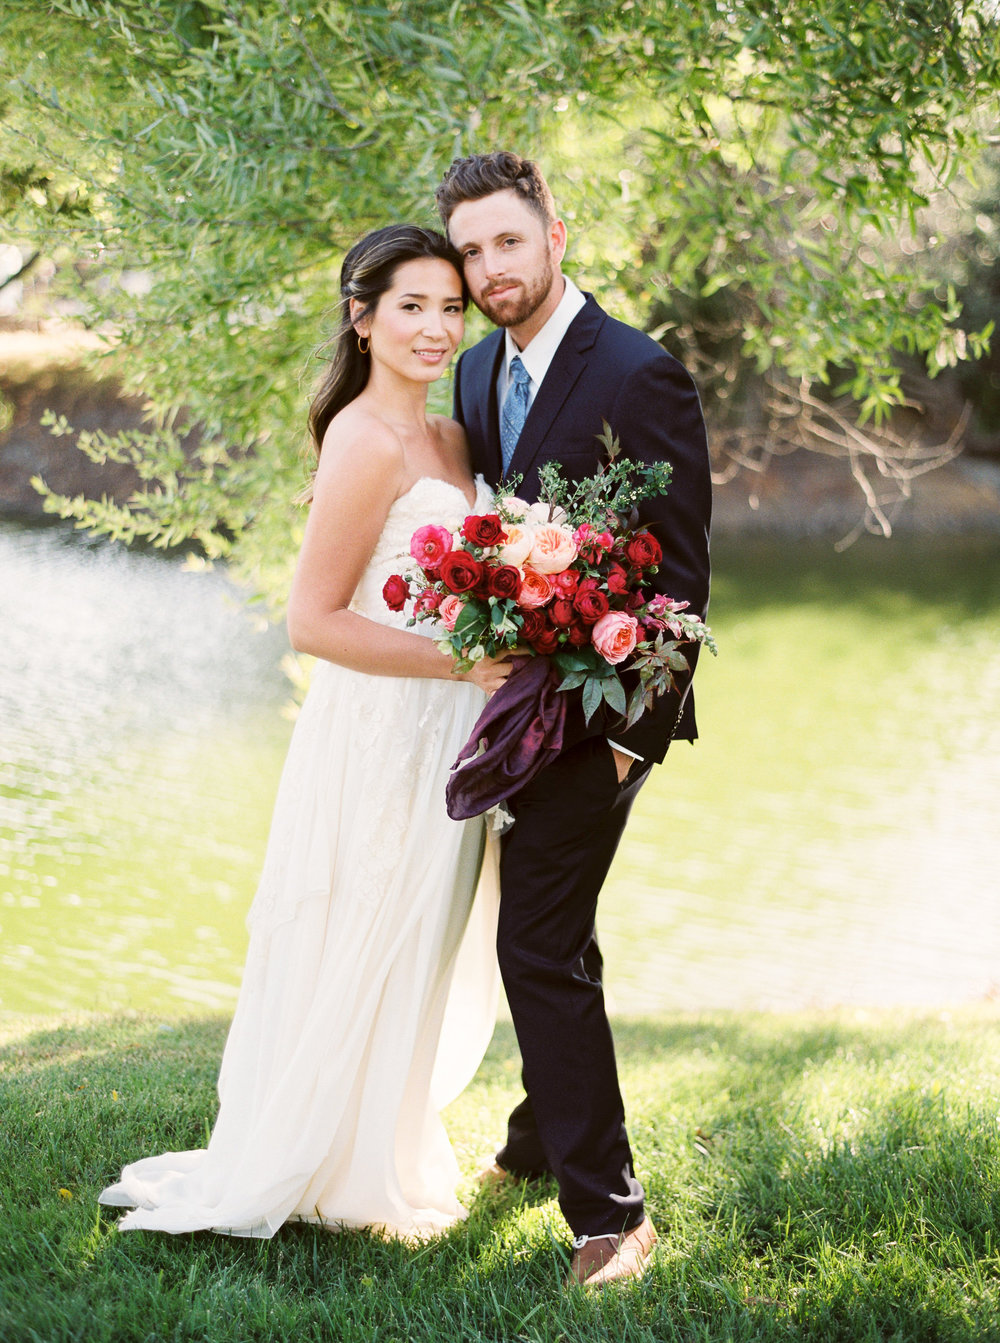 WilderFloralCo_LateSummerHarvest_GreengateRanch_BrideAndGroom